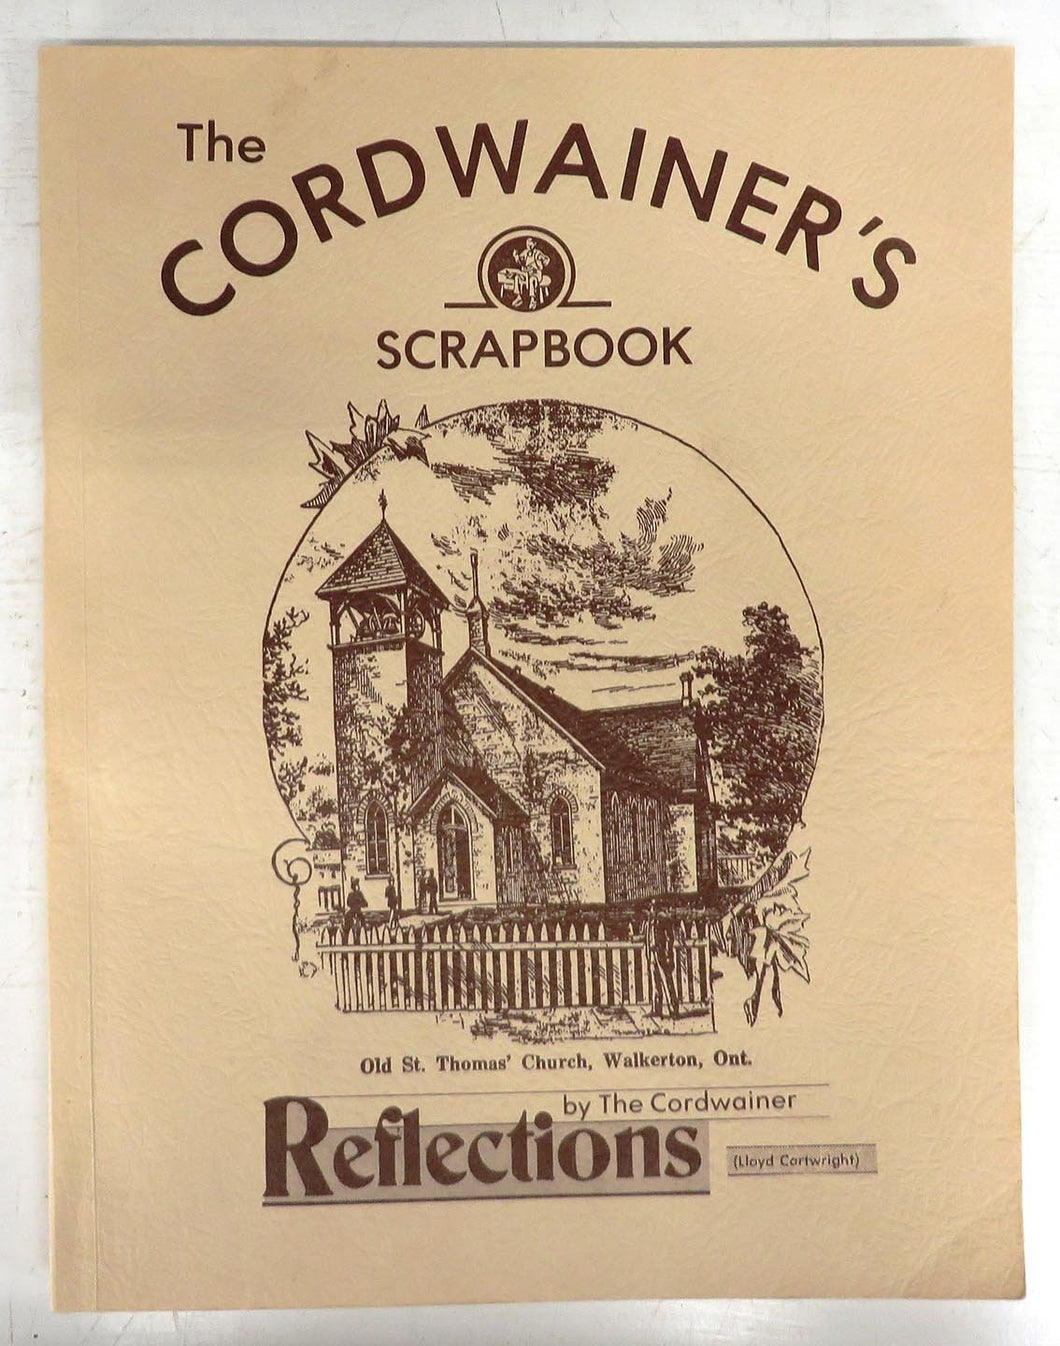 The Cordwainer's Scrapbook: A Collection of Selected Articles that Appeared Weekly in the Walkerton herald Times Since 1981